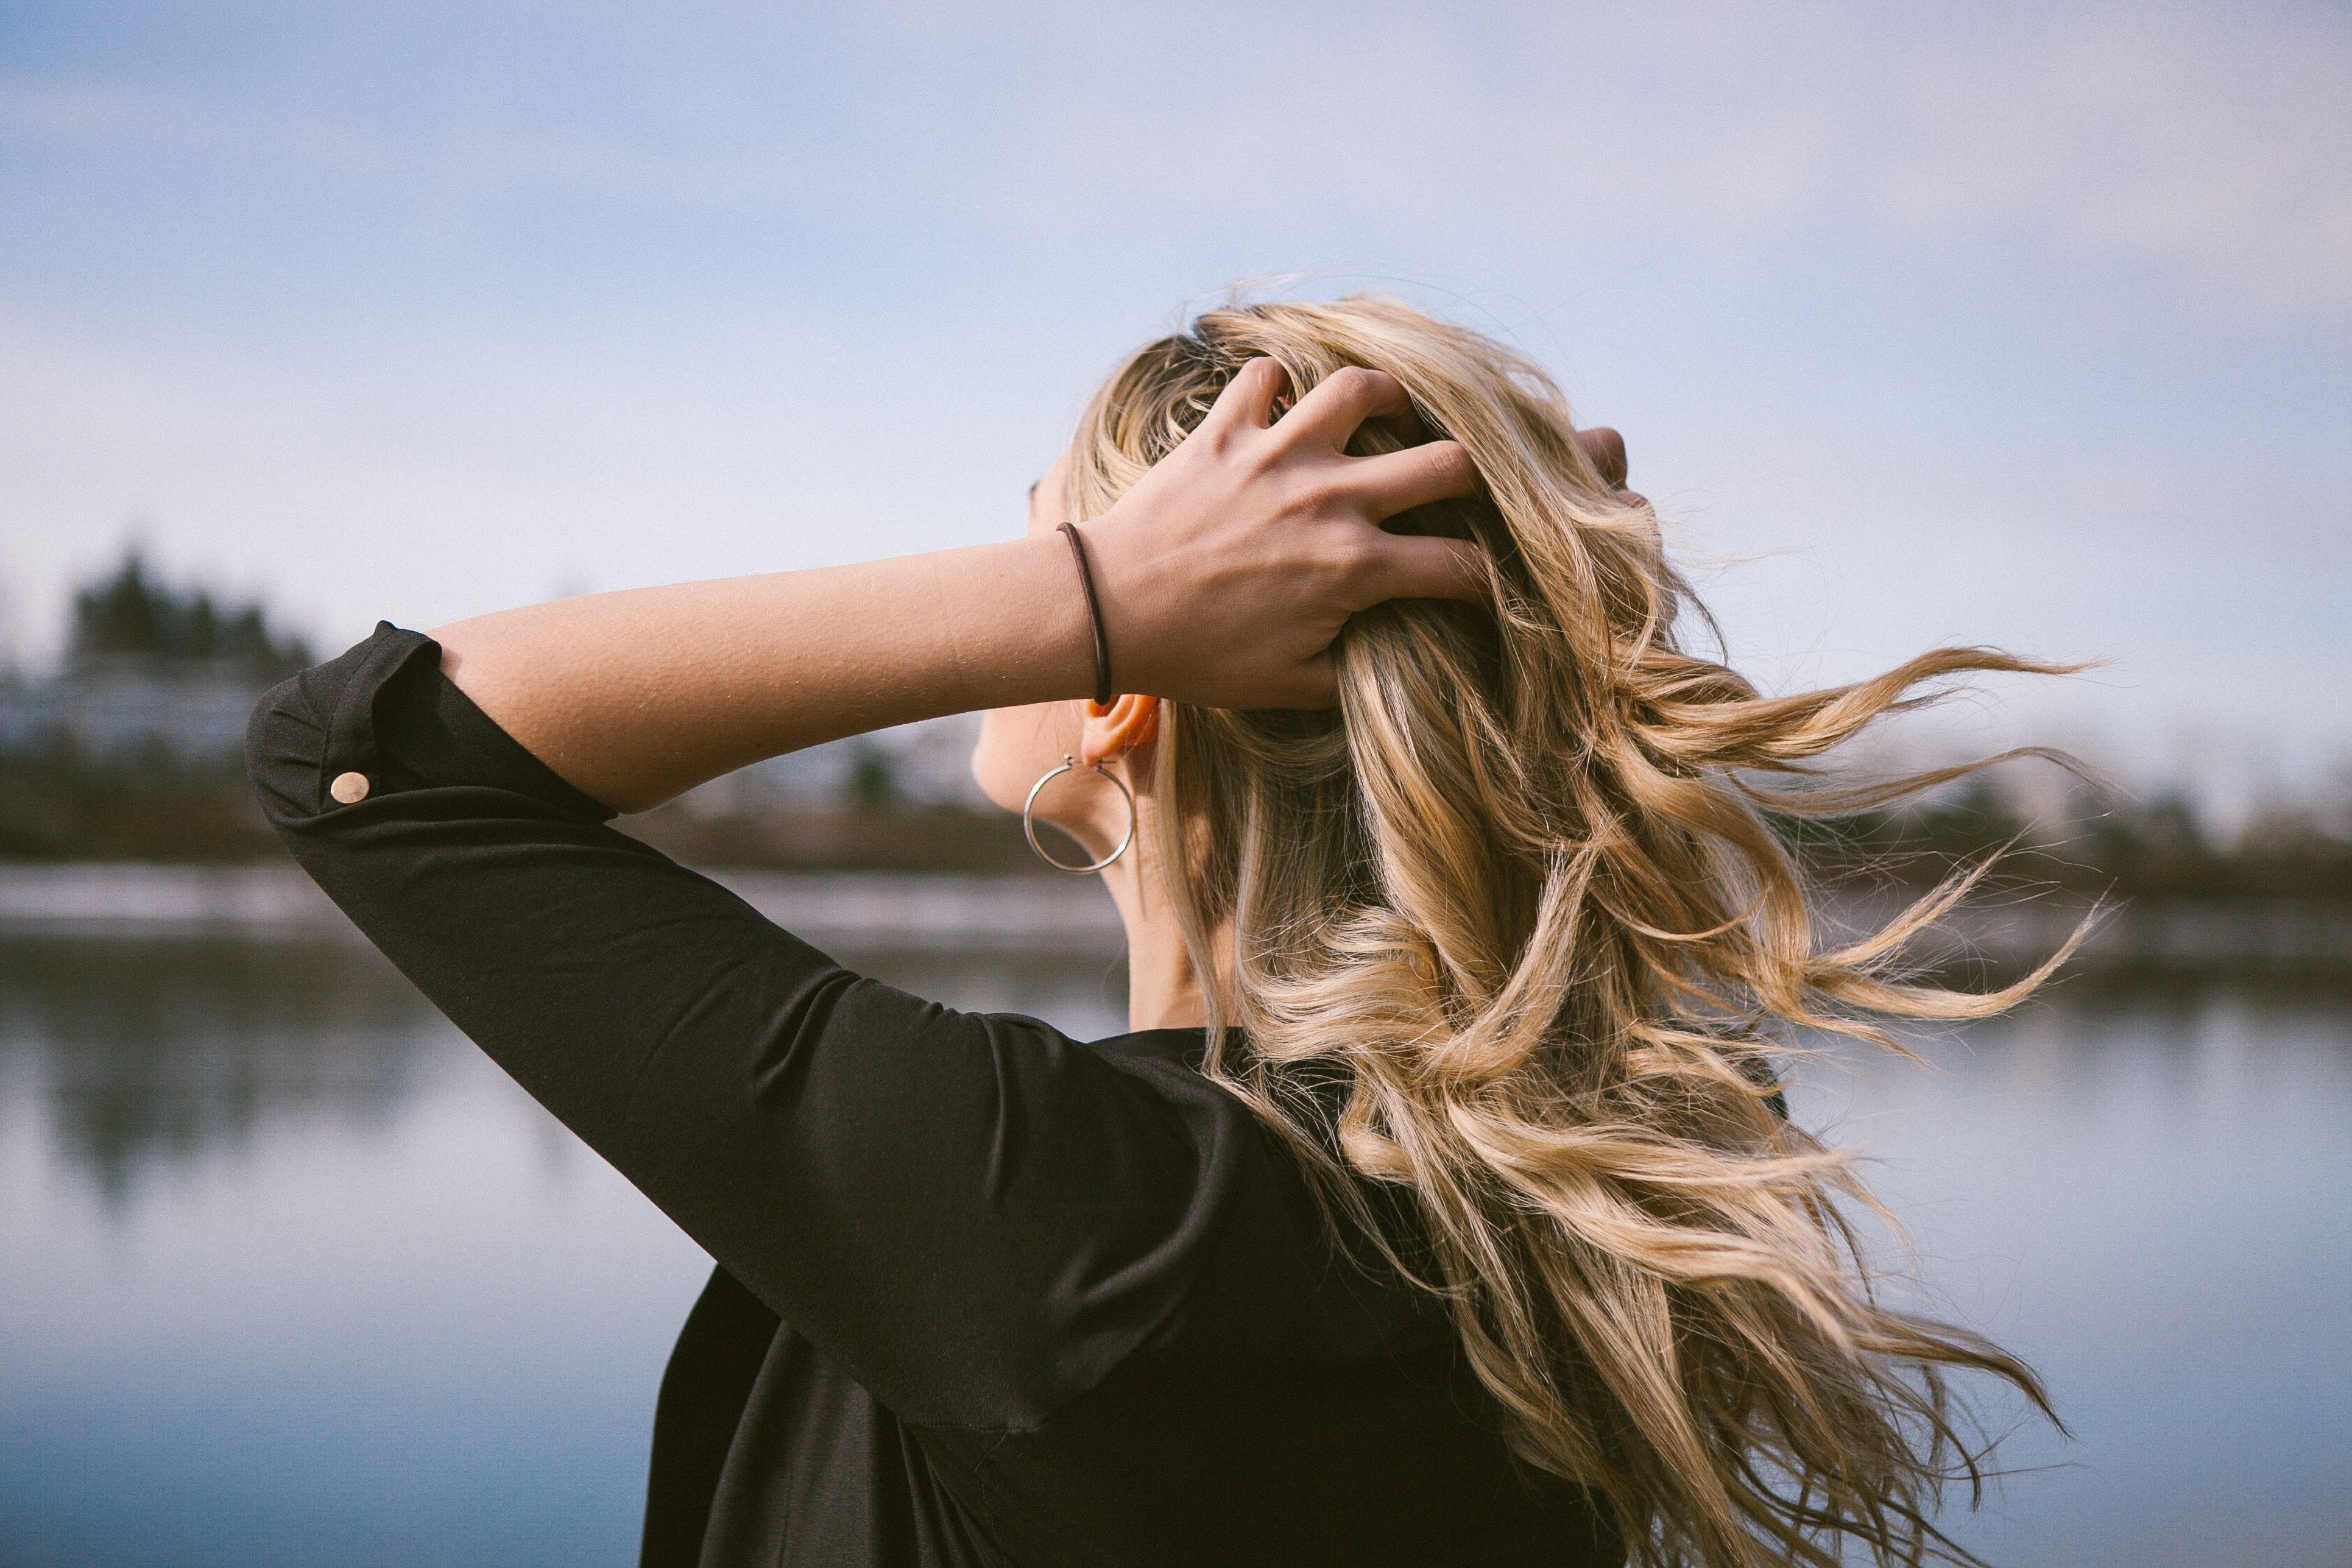 Ask a Vancouver hairstylist: Why won't my hair grow any longer?